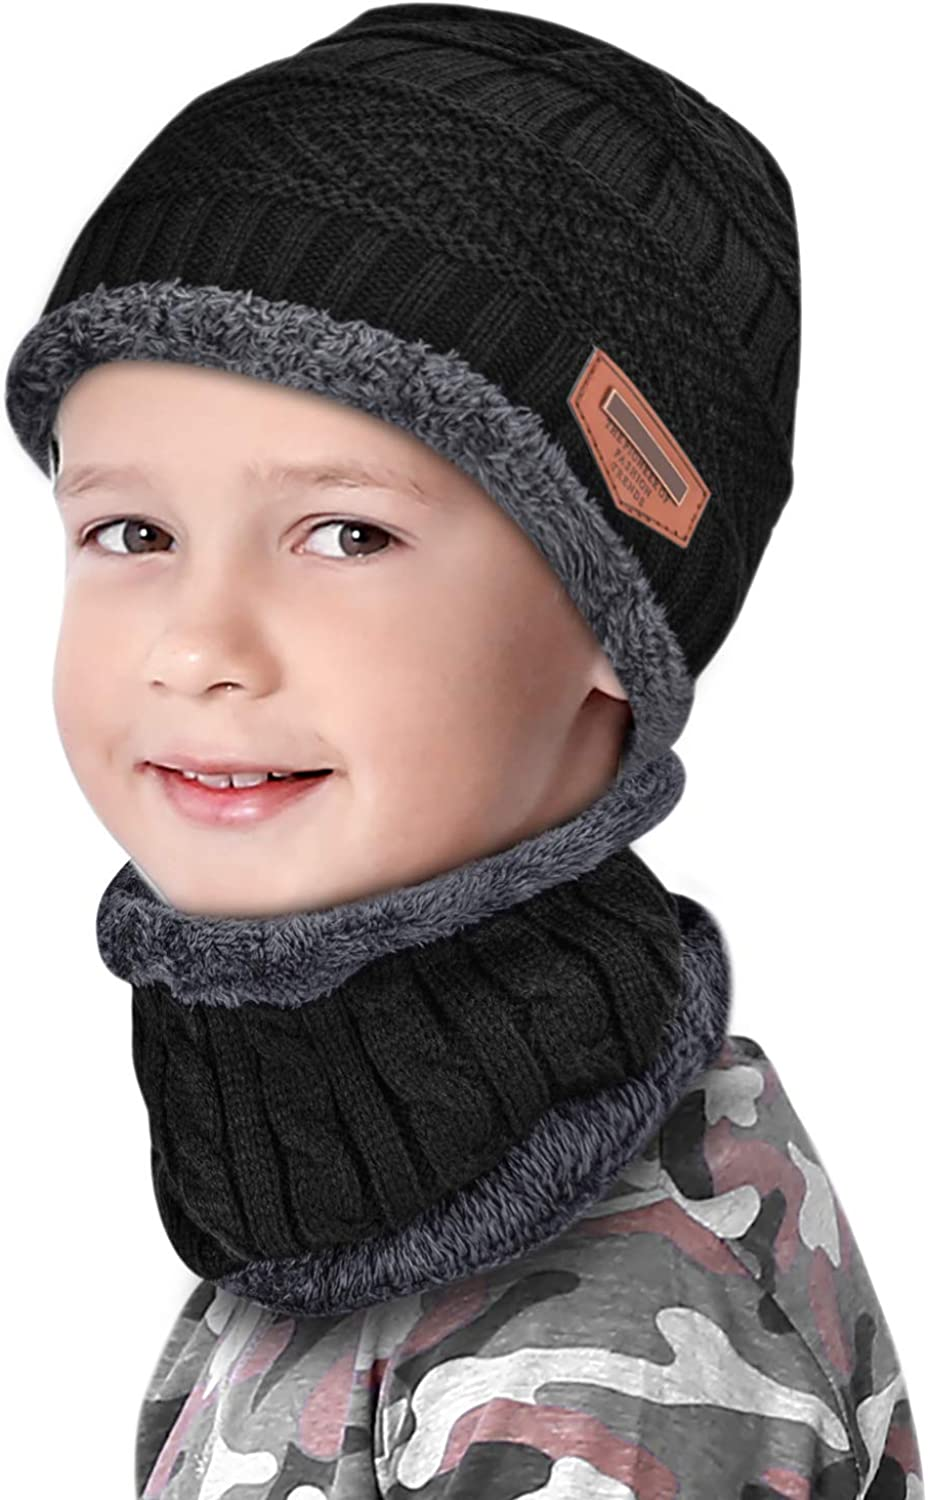 Kids Winter Hat and Scarf Set Warm Knit Beanie Cap and Circle Scarf for Boys Girls